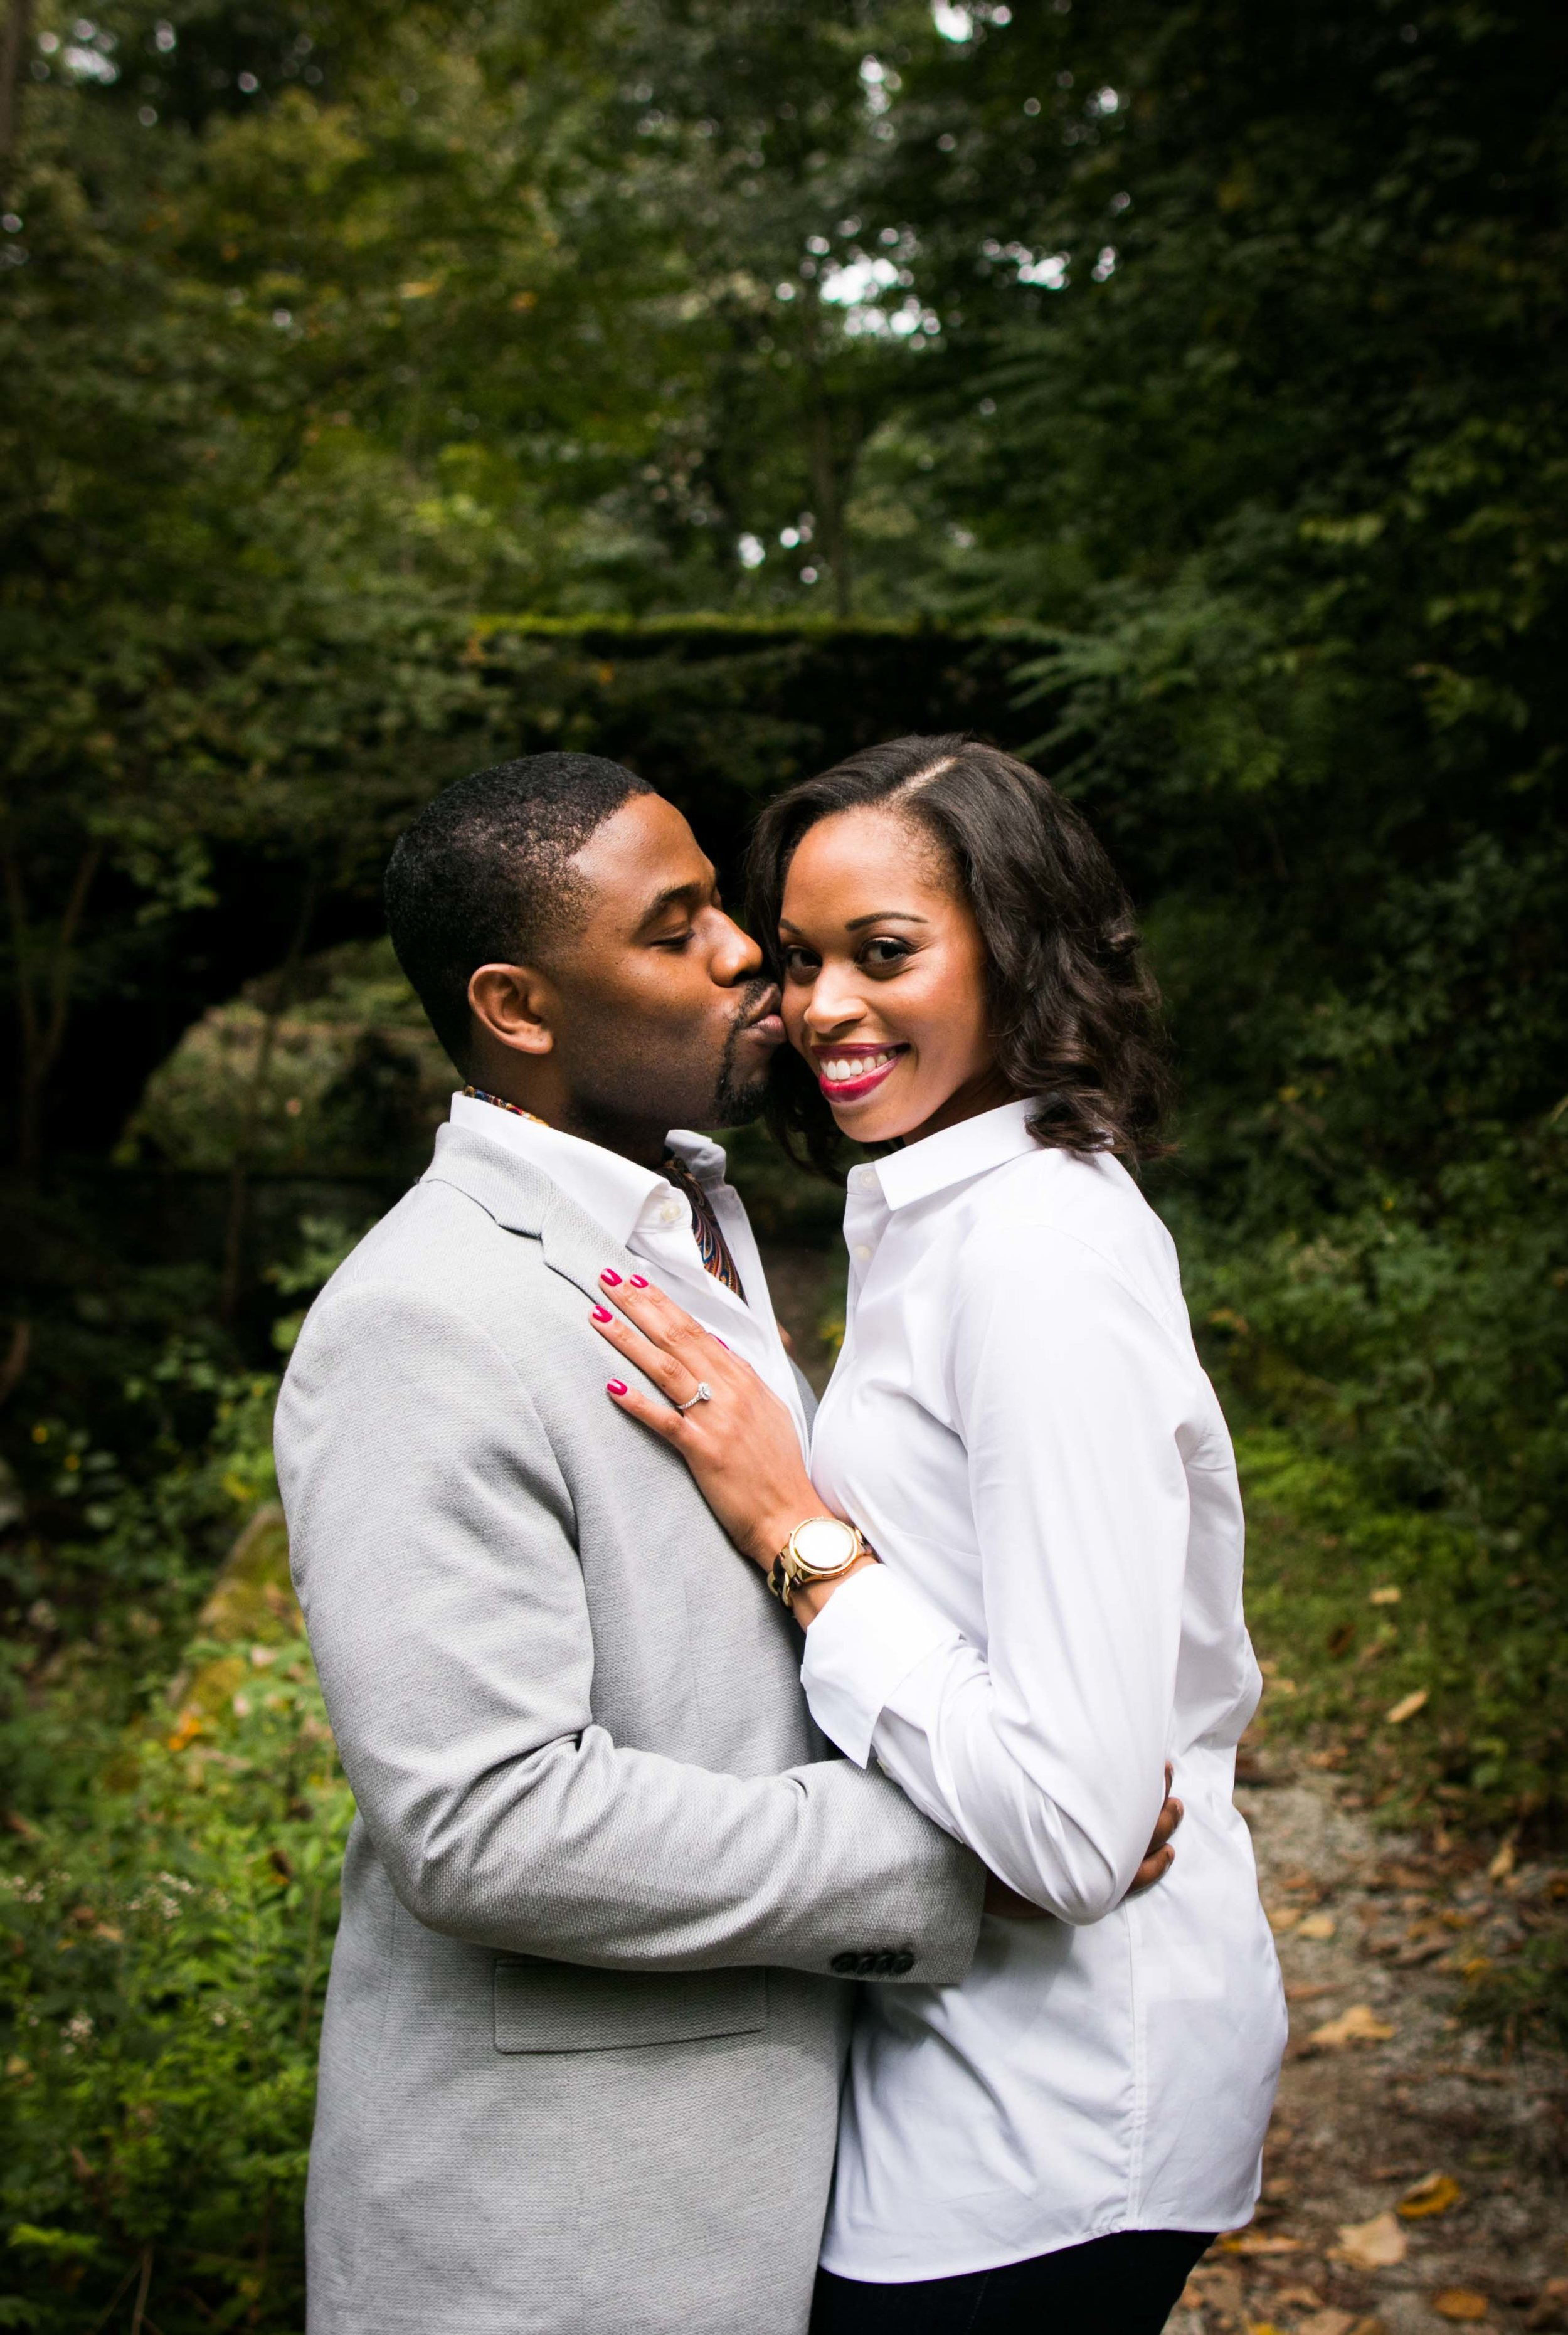 Brittany & Enyinna Engagement_092318_Low Res-24.jpg